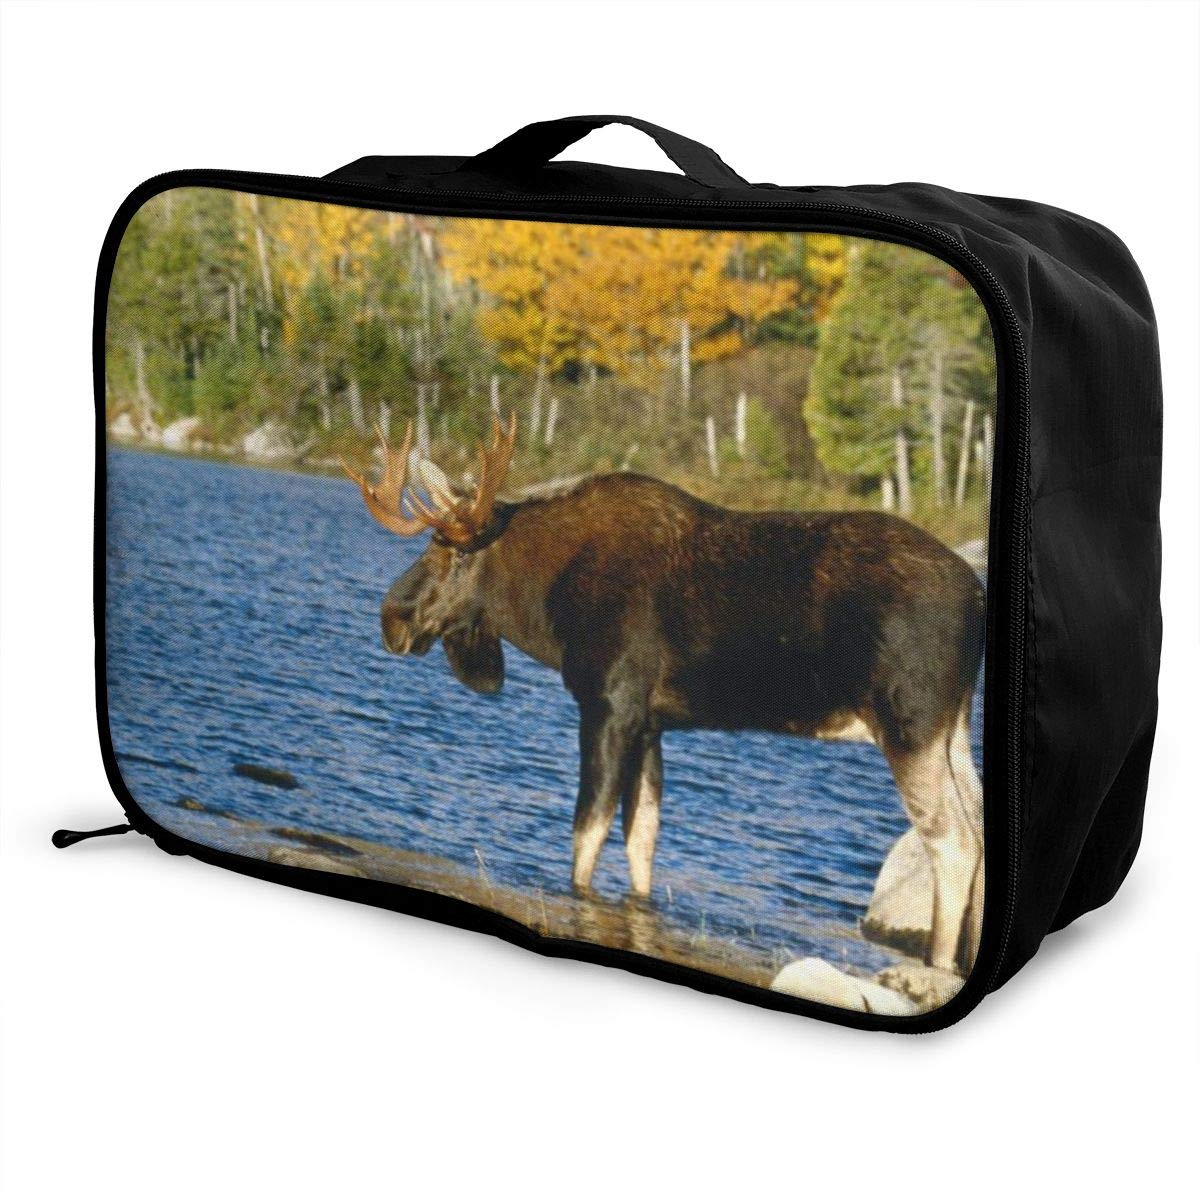 Animal Elk And Water Travel Lightweight Storage Carry Luggage Duffle Tote Bag